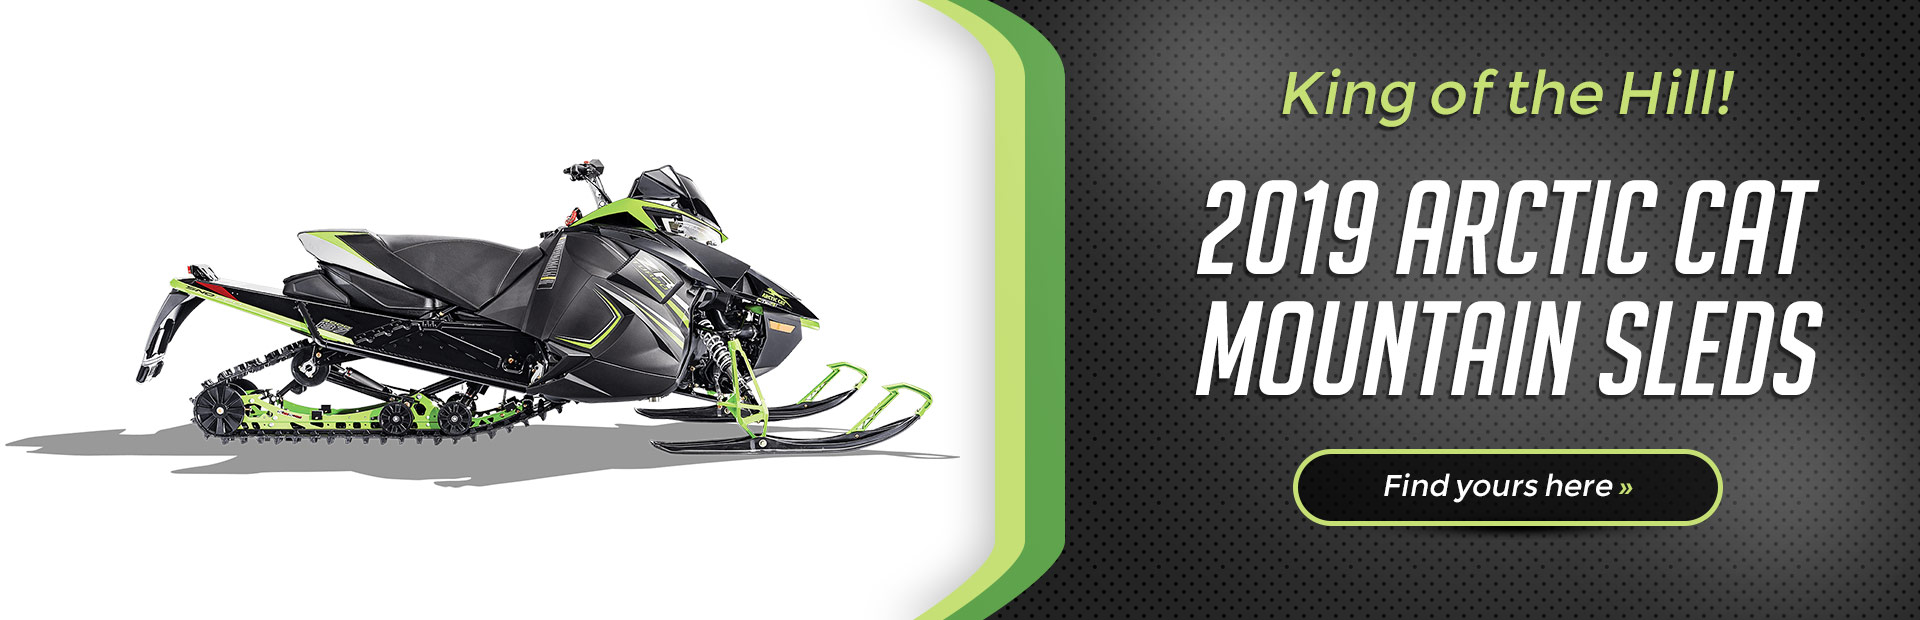 2019 Arctic Cat Mountain Sleds: Click here to view the models.